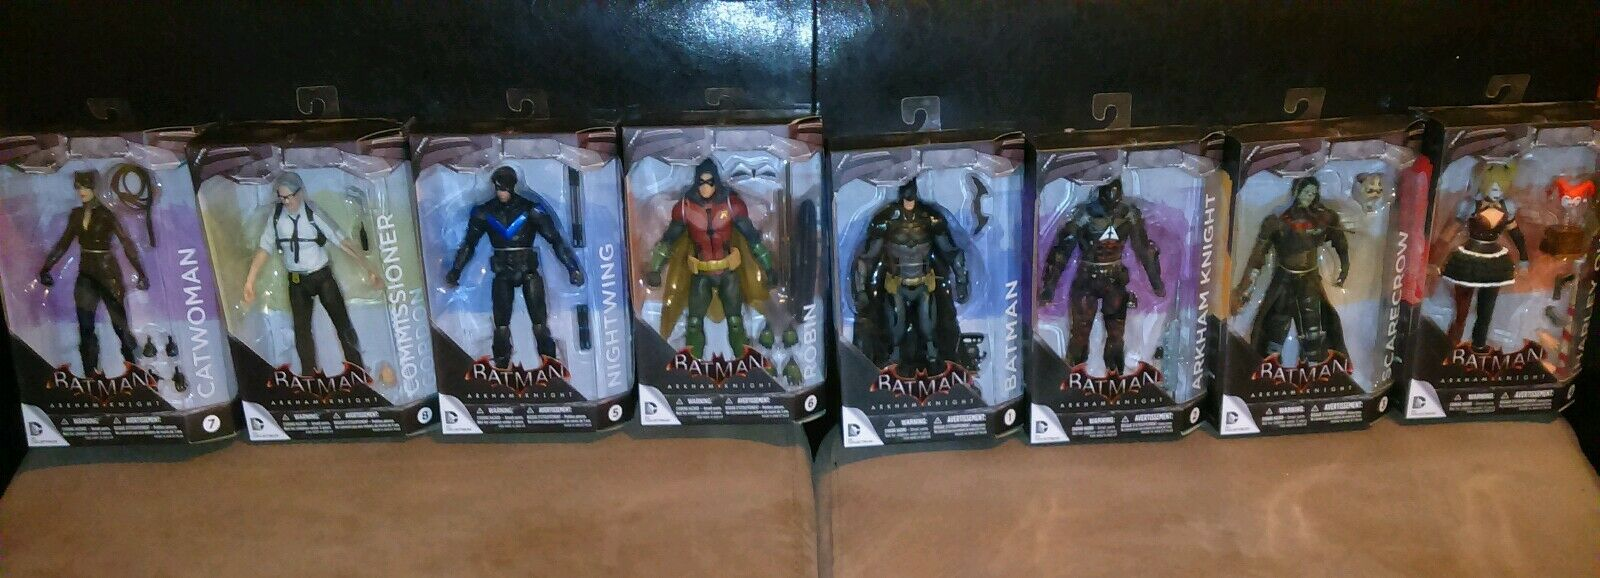 Batman Arkham Knight - Action Figures Full Collection 1-8 (